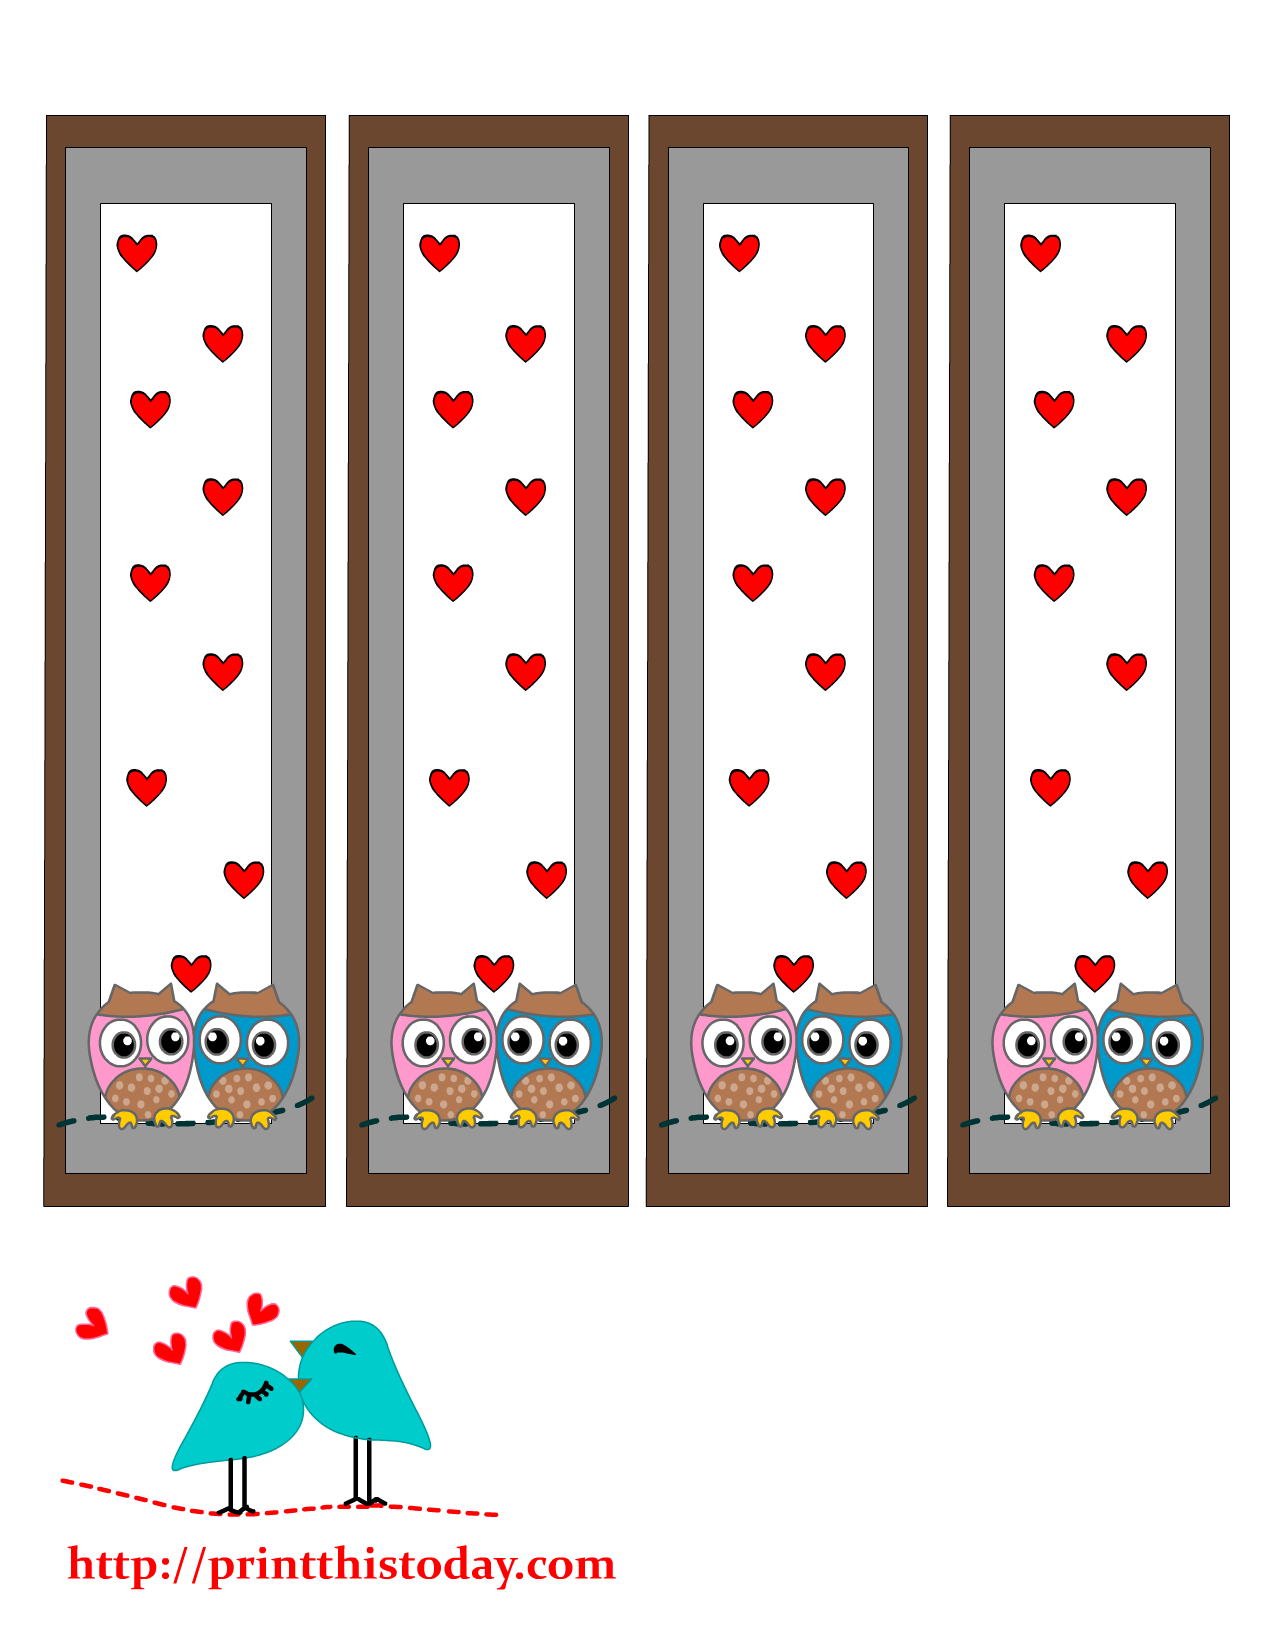 graphic relating to Cute Bookmarks Printable referred to as Bookmarks presenting Adorable Owls